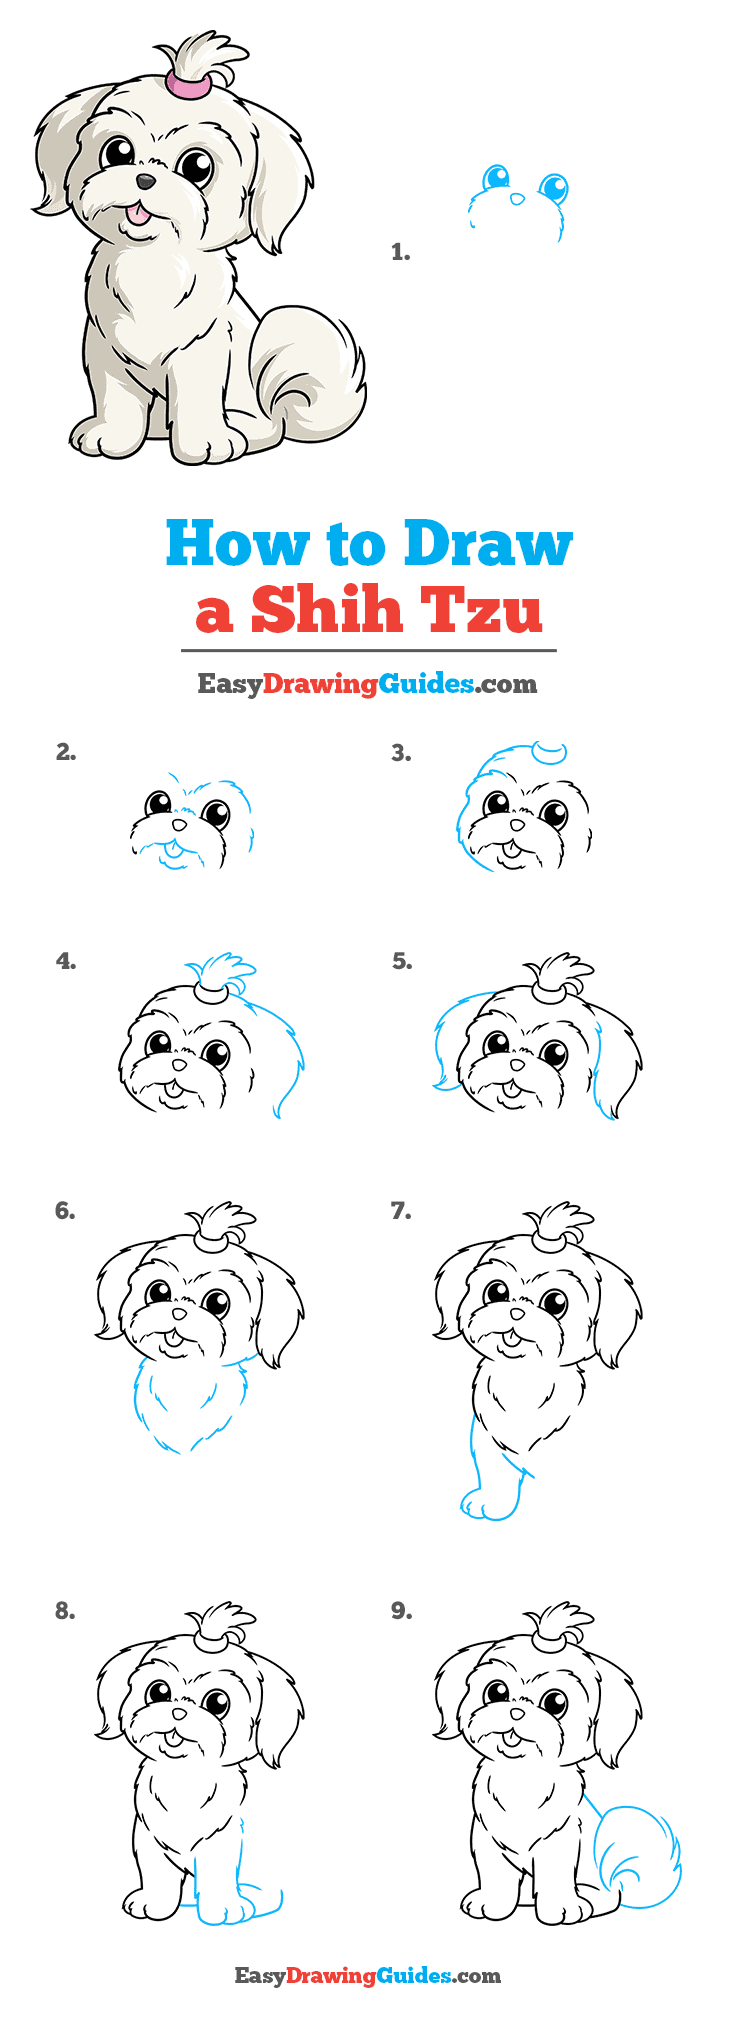 How to Draw a Shih Tzu Step by Step Tutorial Image